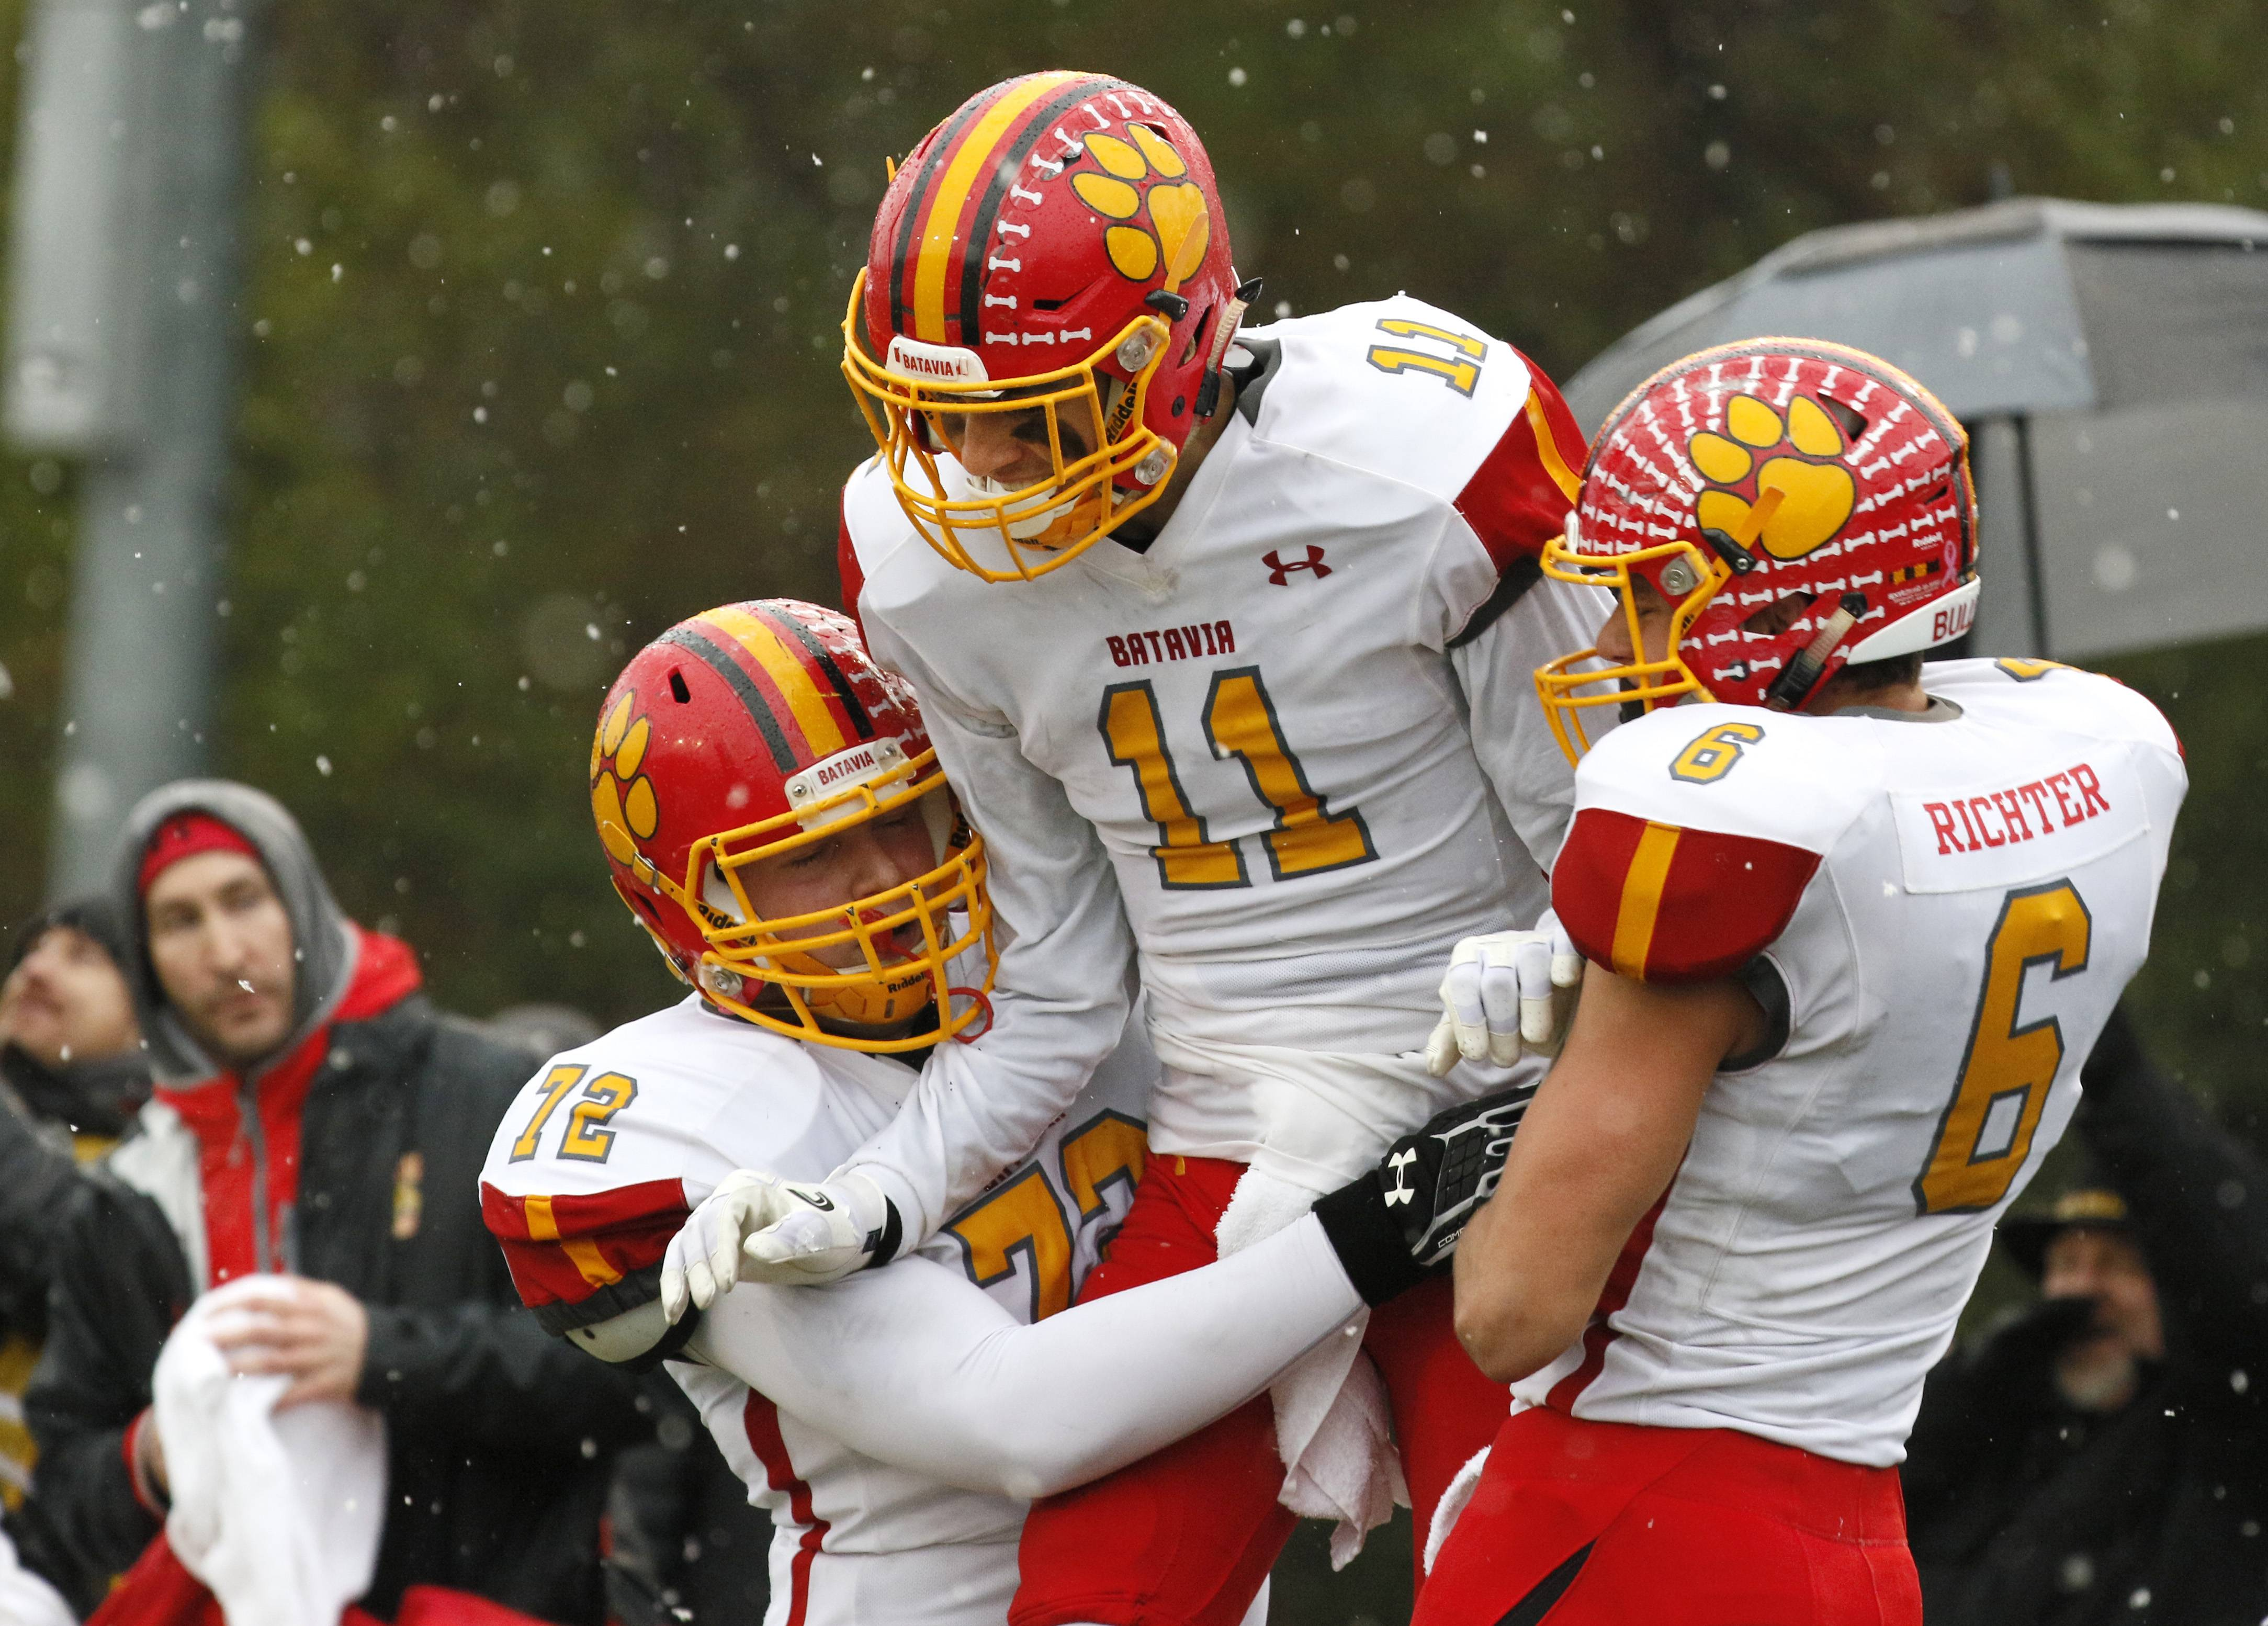 Batavia's Eric Peterson (11) is hoisted into the air by teammtaes Evan Holden (72) and Collin Richter (6) after scoring his second touchdown in the Bulldogs' 23-13 win over Benet Academy in the Class 7A semifinals at Benedictine University in Lisle.